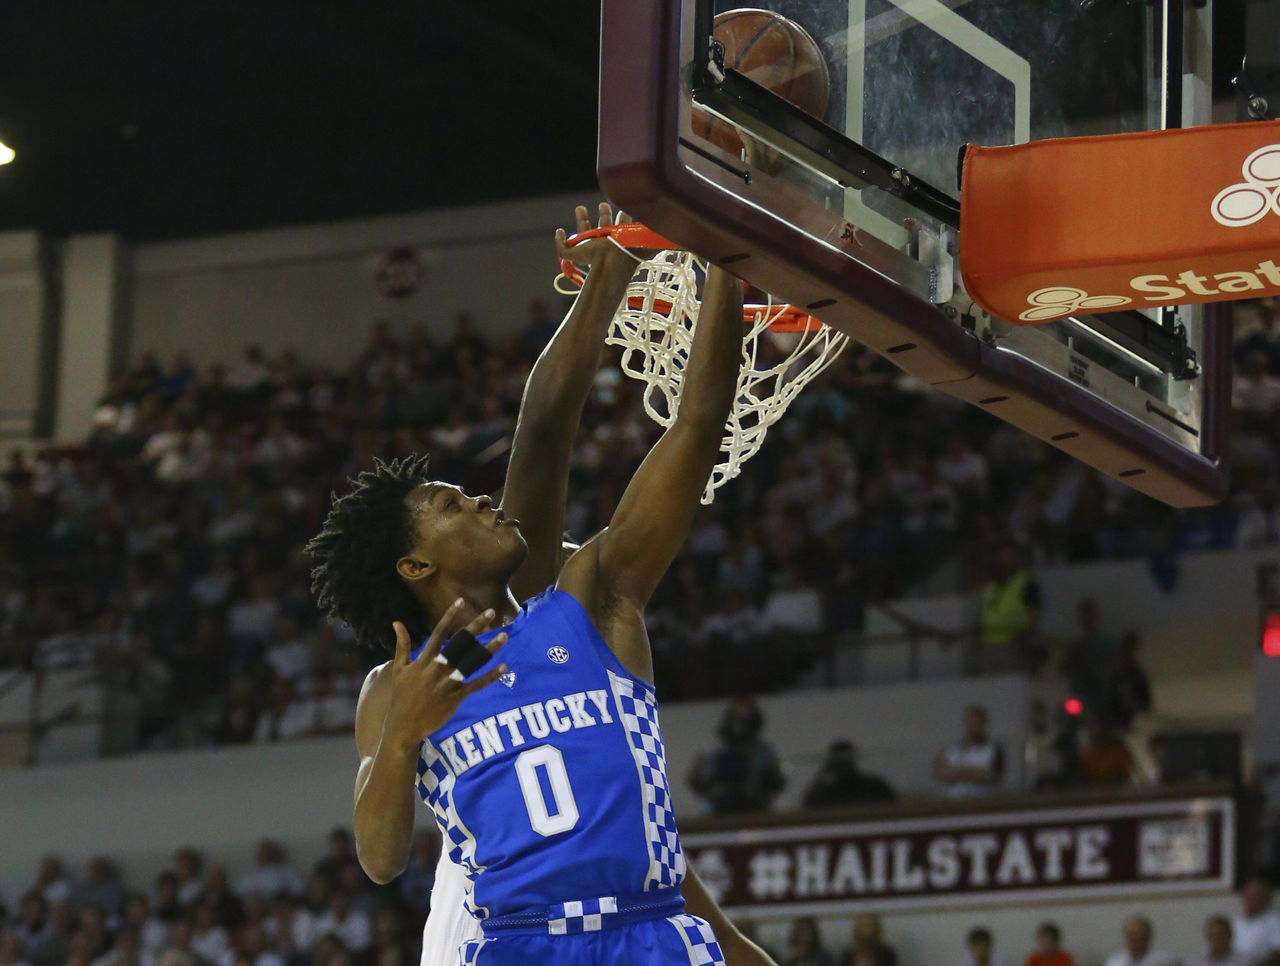 Cropped 2017 01 18t013419z 1427235271 nocid rtrmadp 3 ncaa basketball kentucky at mississippi state